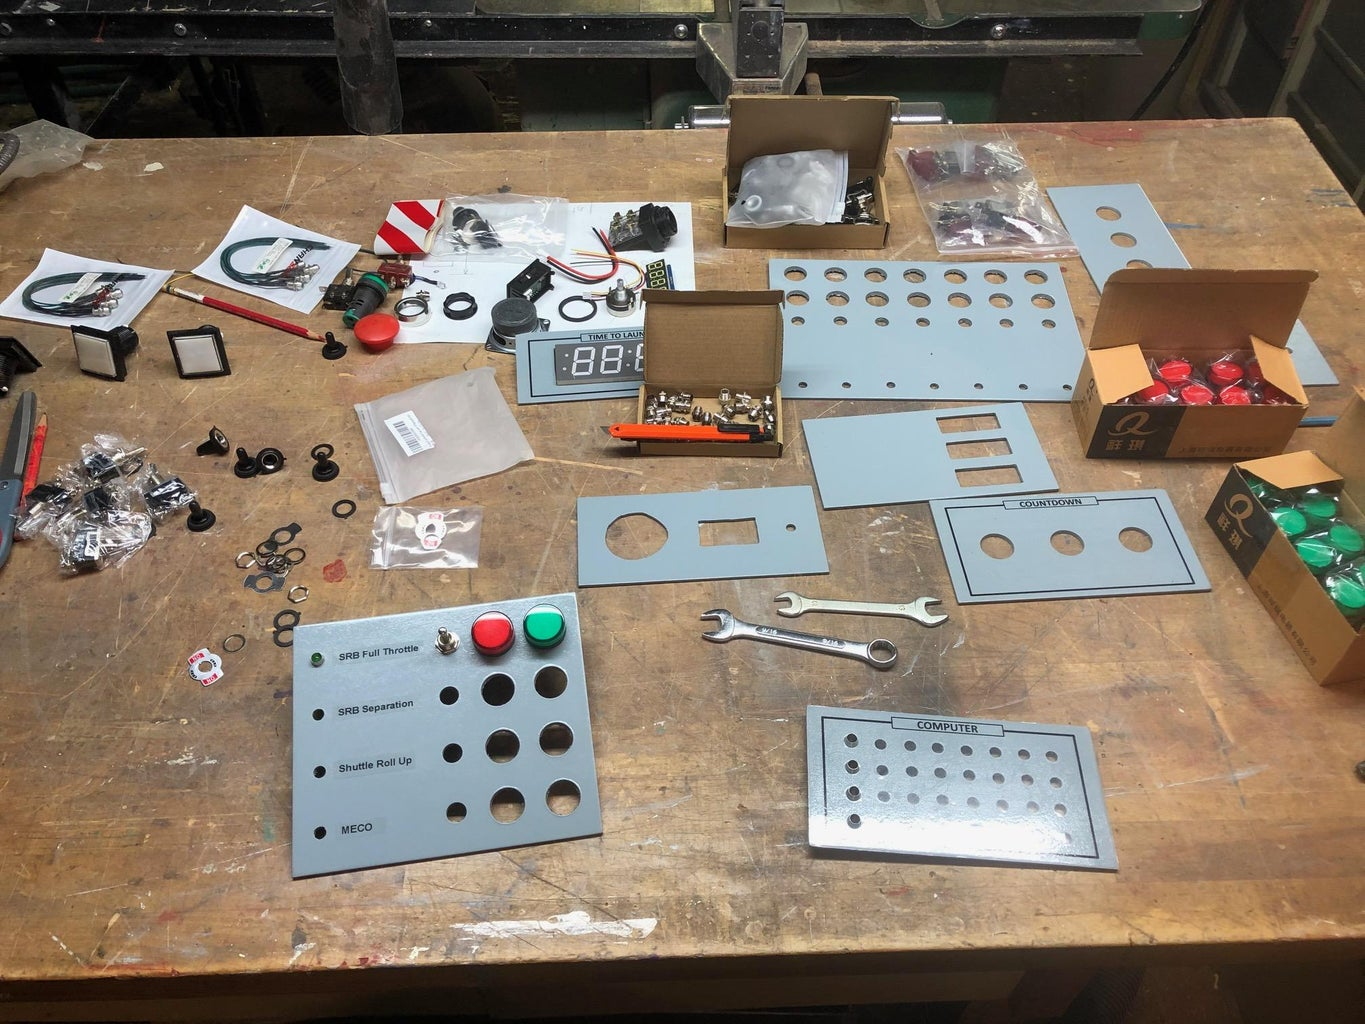 Individual Panels and Electronic Components